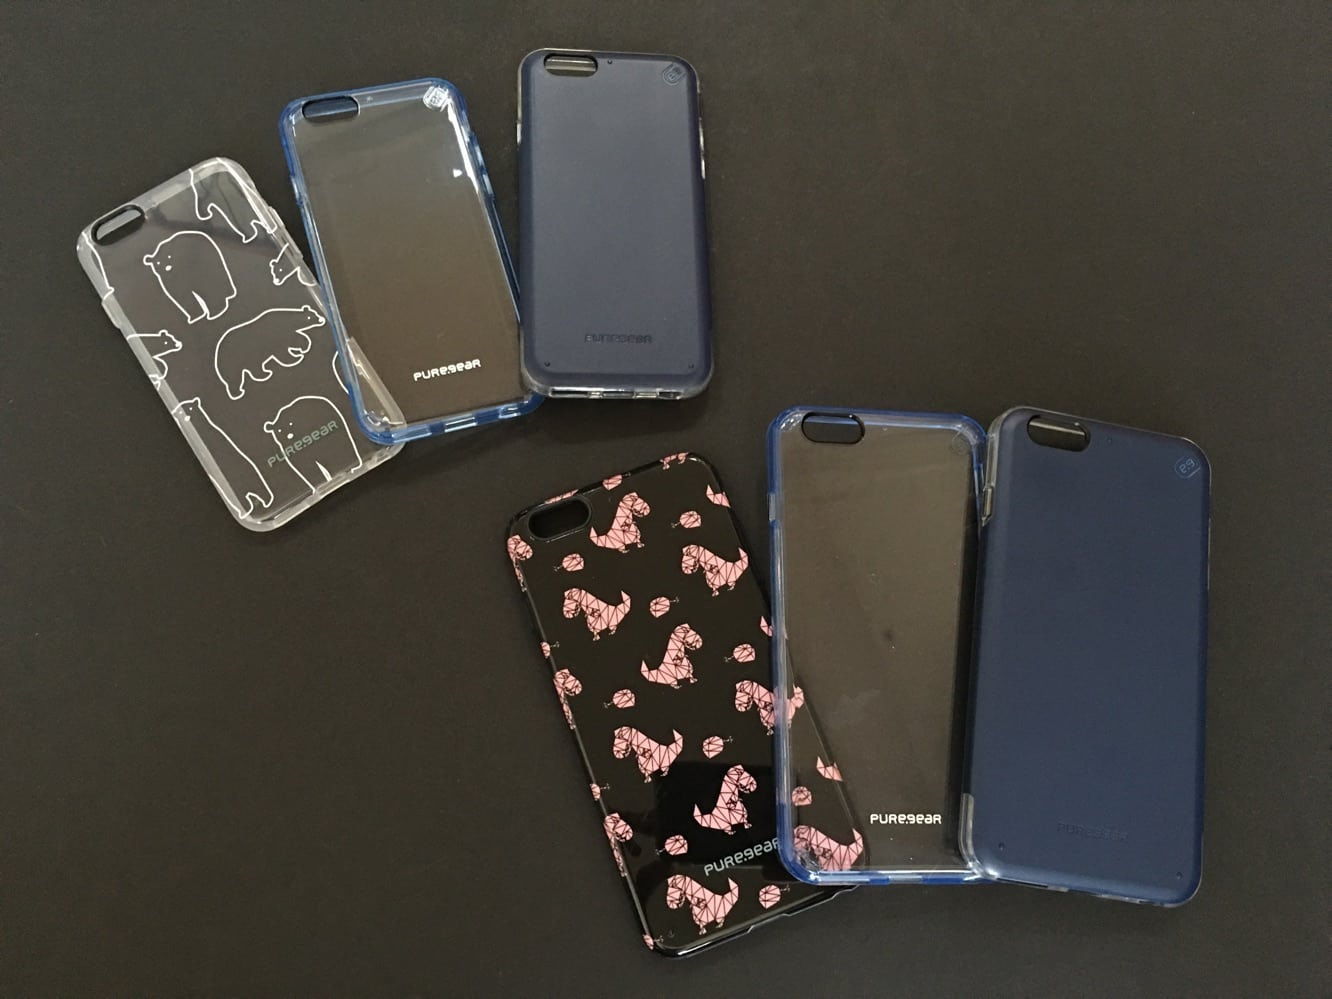 Review: PureGear DualTek Pro, Motif Series, Slim Shell Pro for iPhone 6/6s and iPhone 6/6s Plus